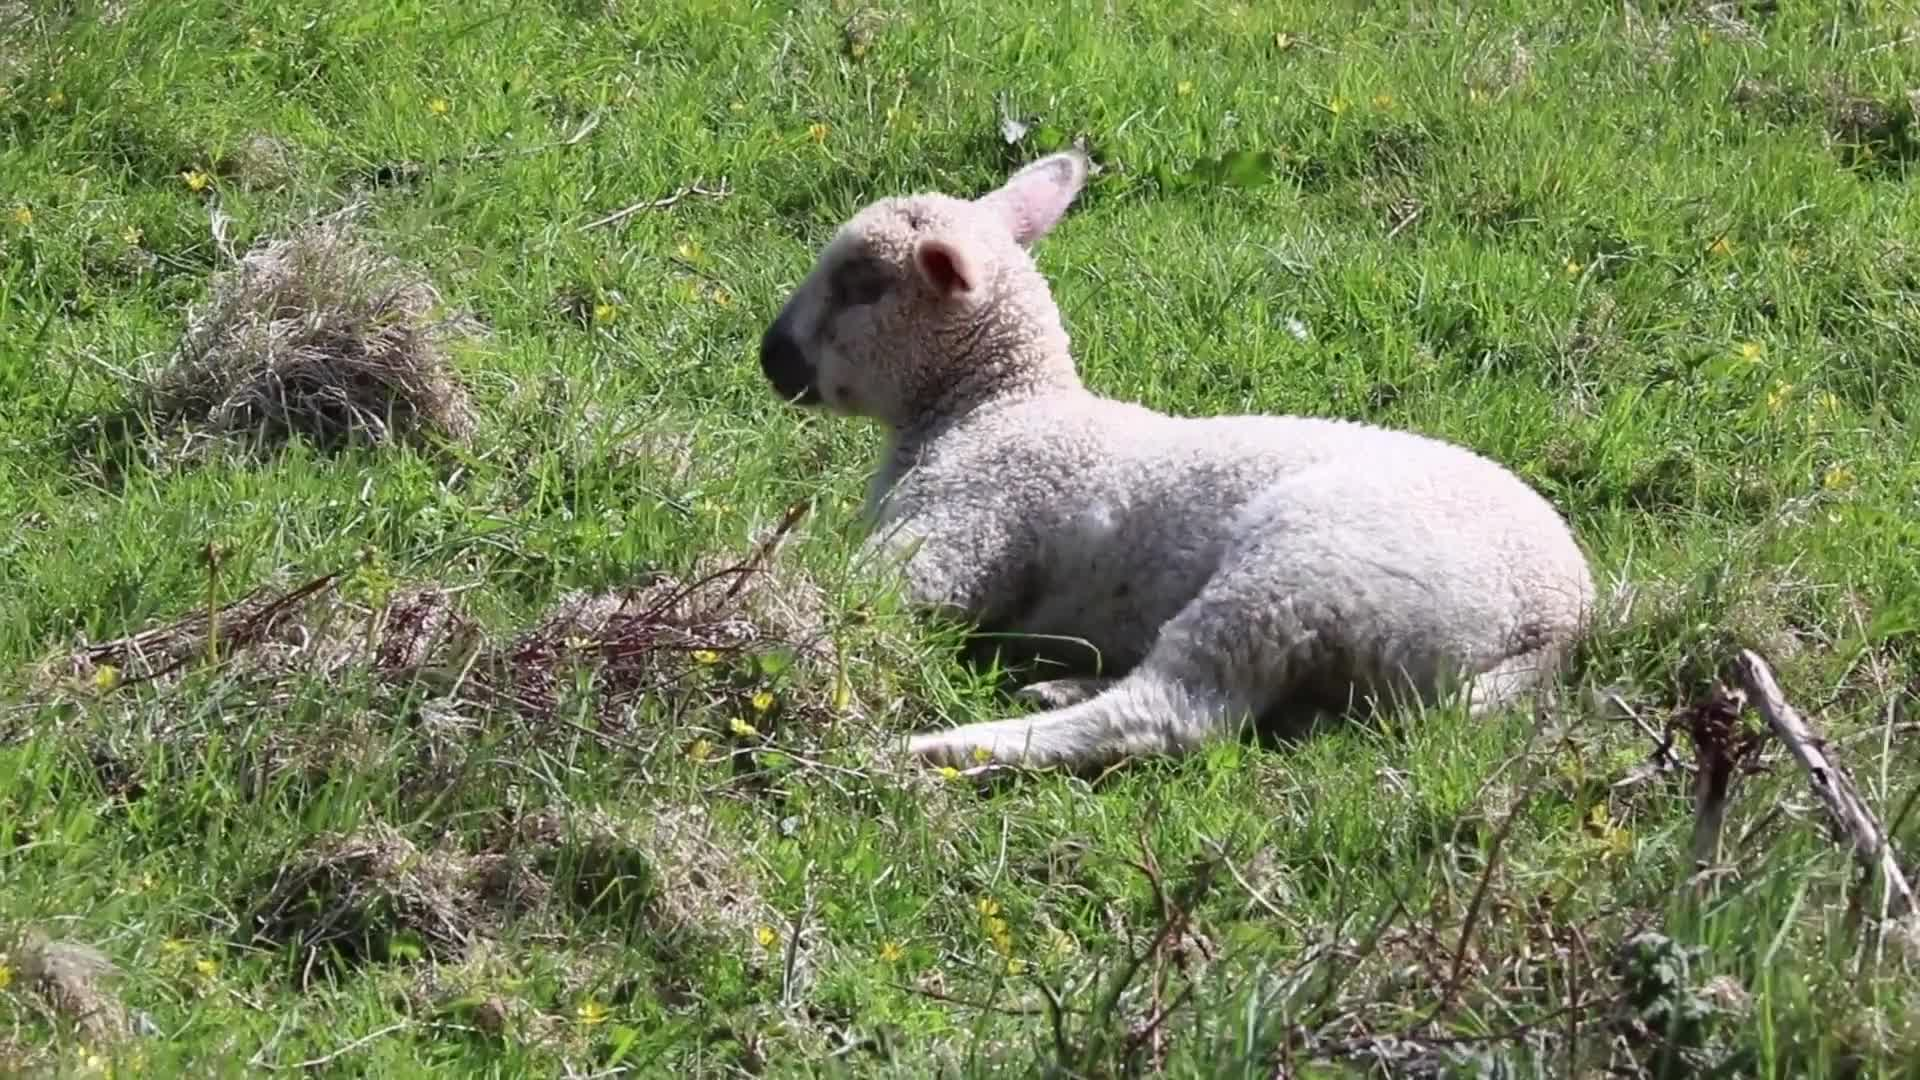 Lamb lying down cute sheep white